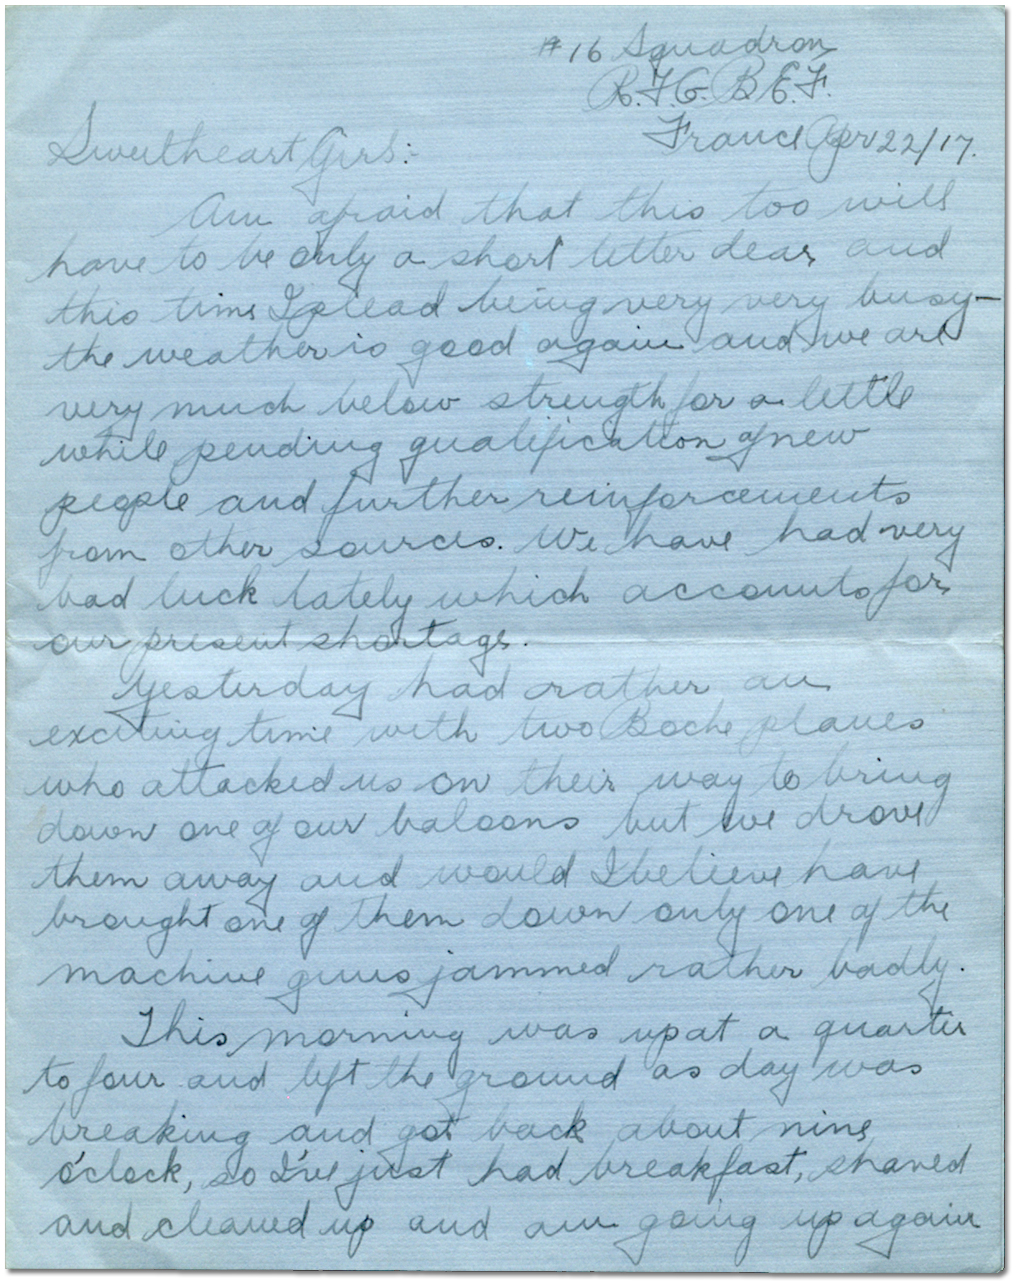 Letter from Harry Mason to Sadie Arbuckle, April 22, 1917